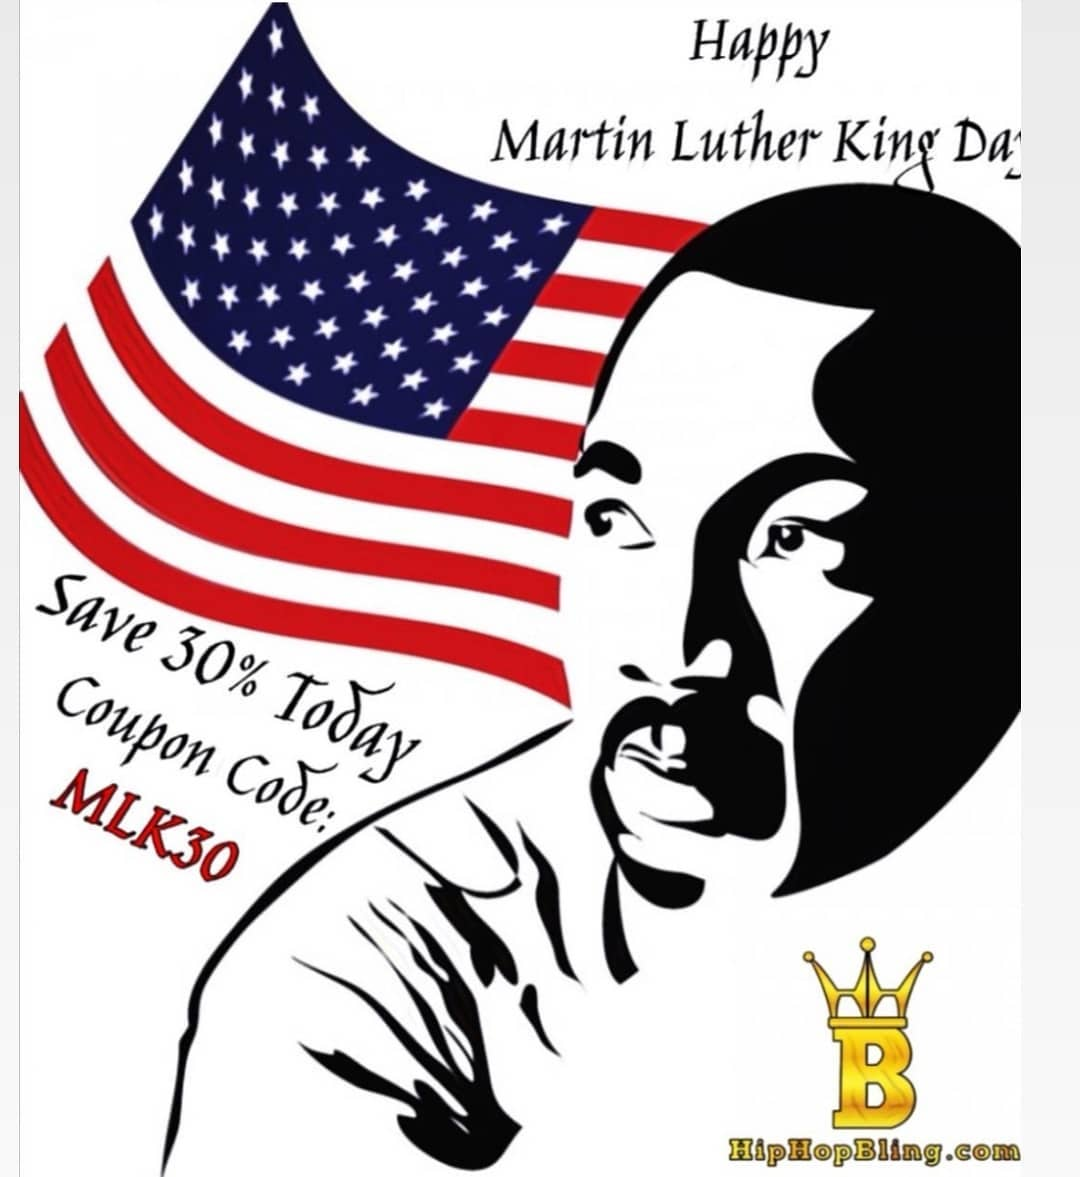 Happy MLK Day y'all, code MLK30 for 30% off at HipHopBling.com